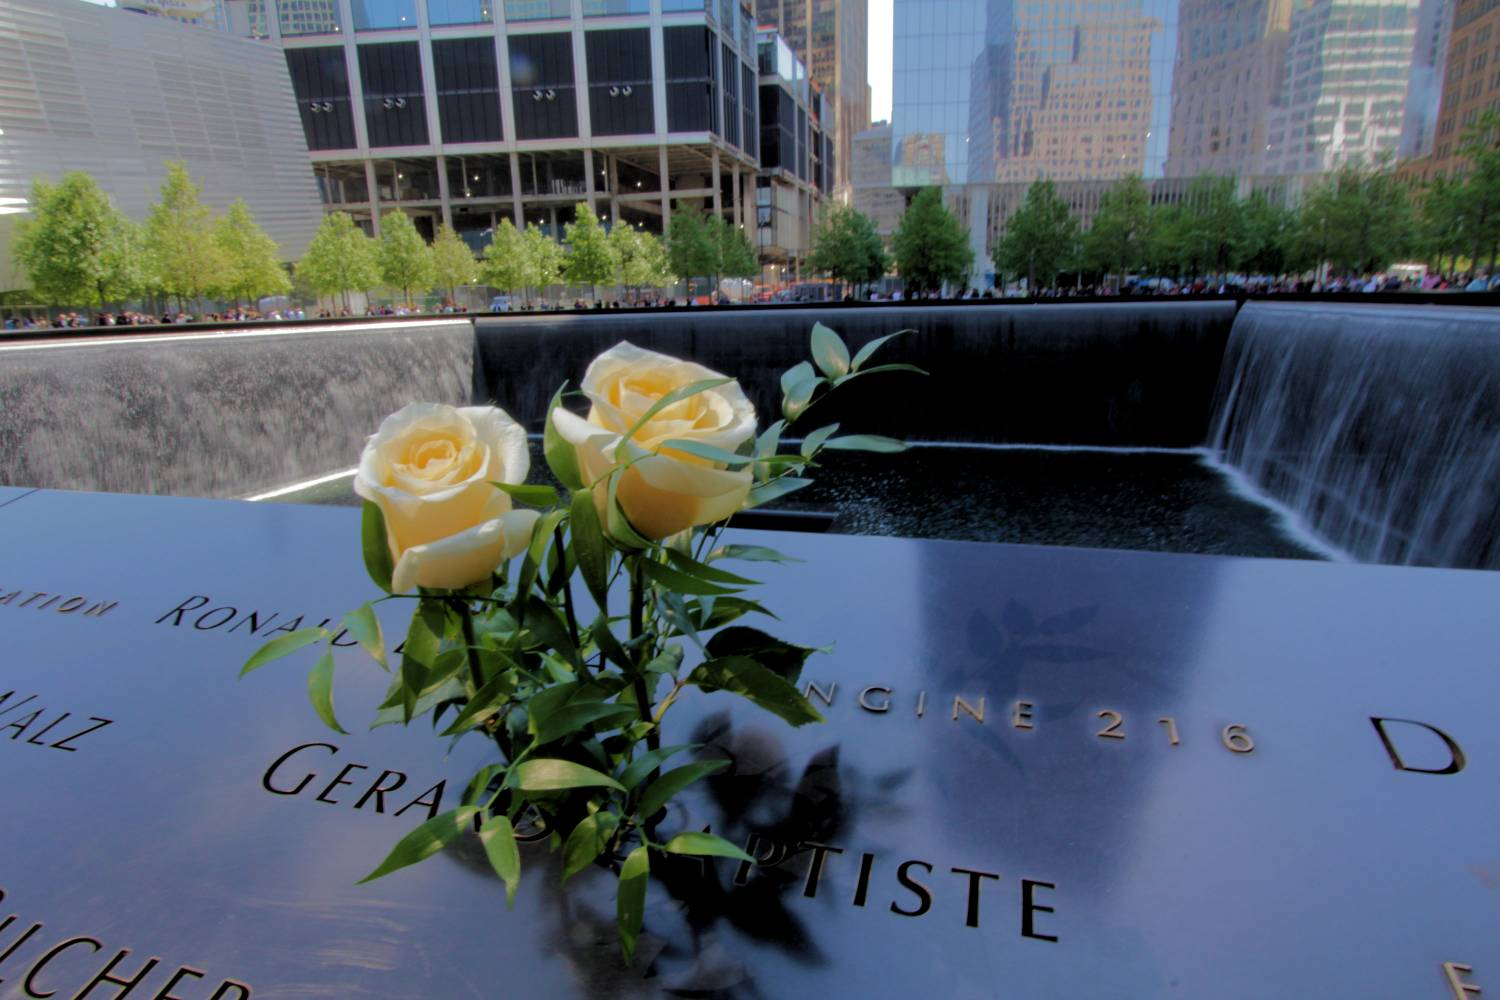 New York City Vacation Packages, 9/11 memorial